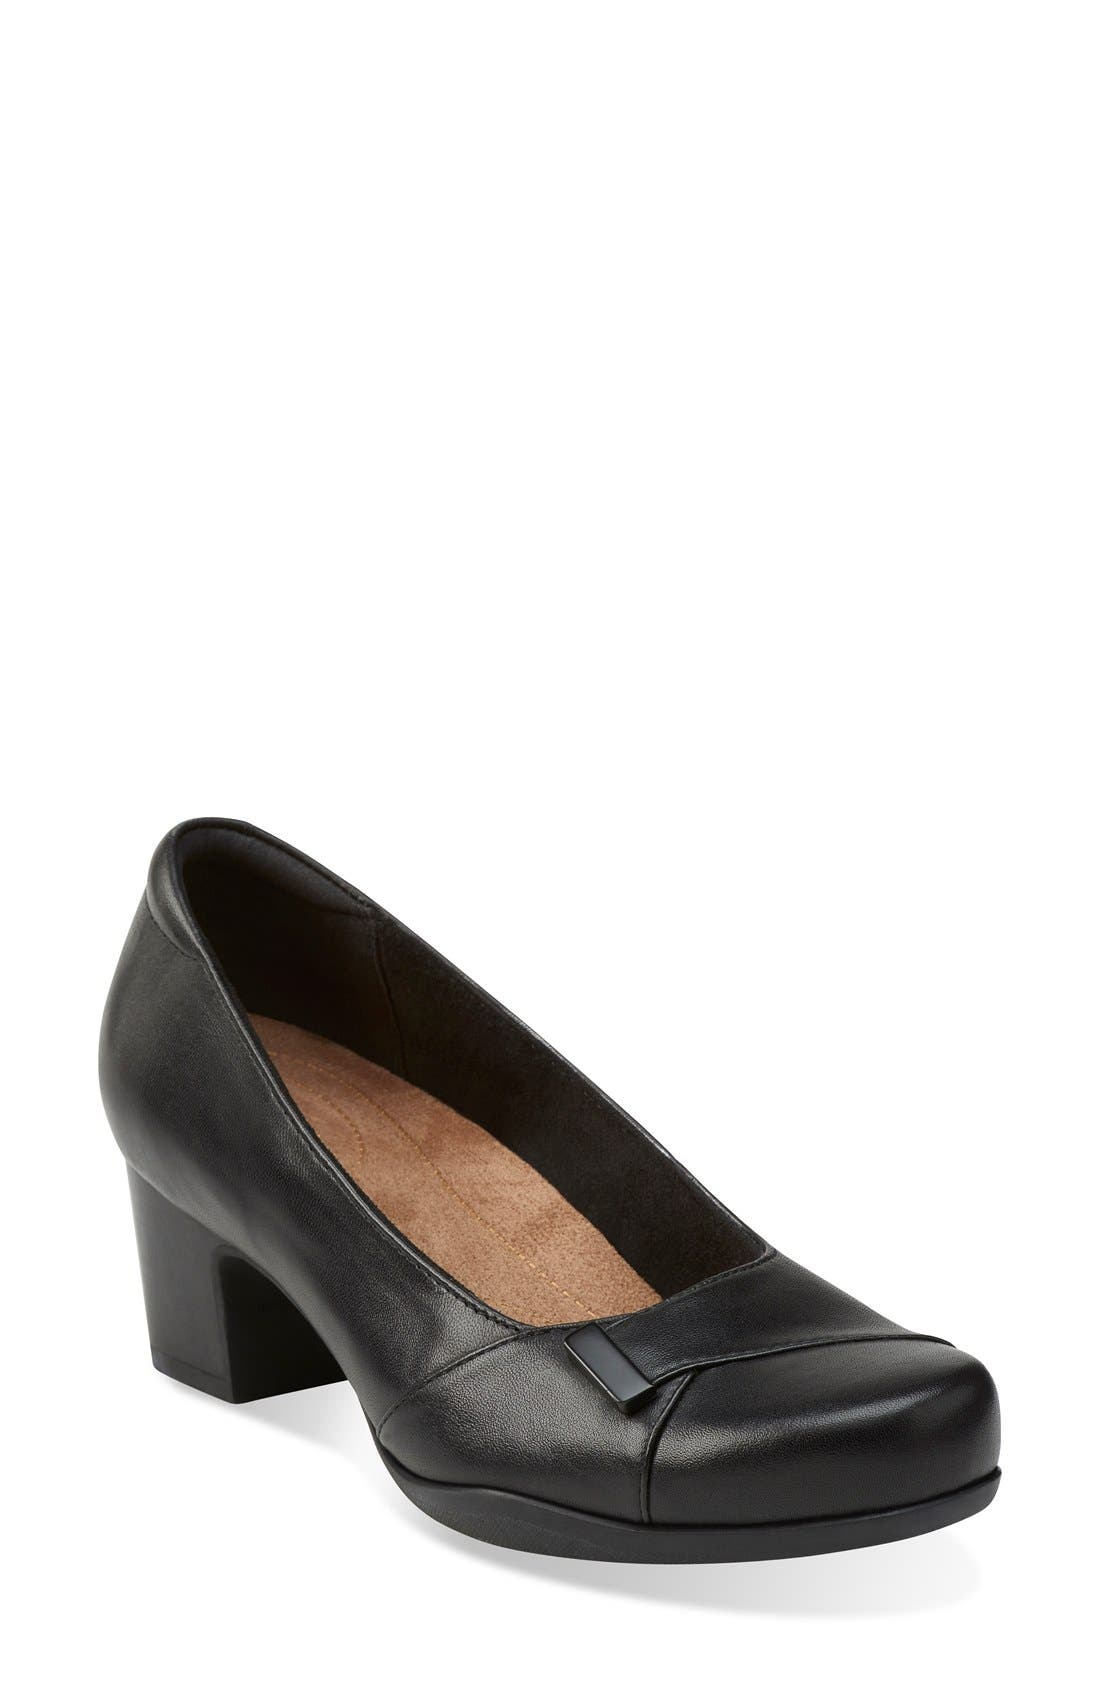 CLARKS<SUP>®</SUP> Rosalyn Belle Pump